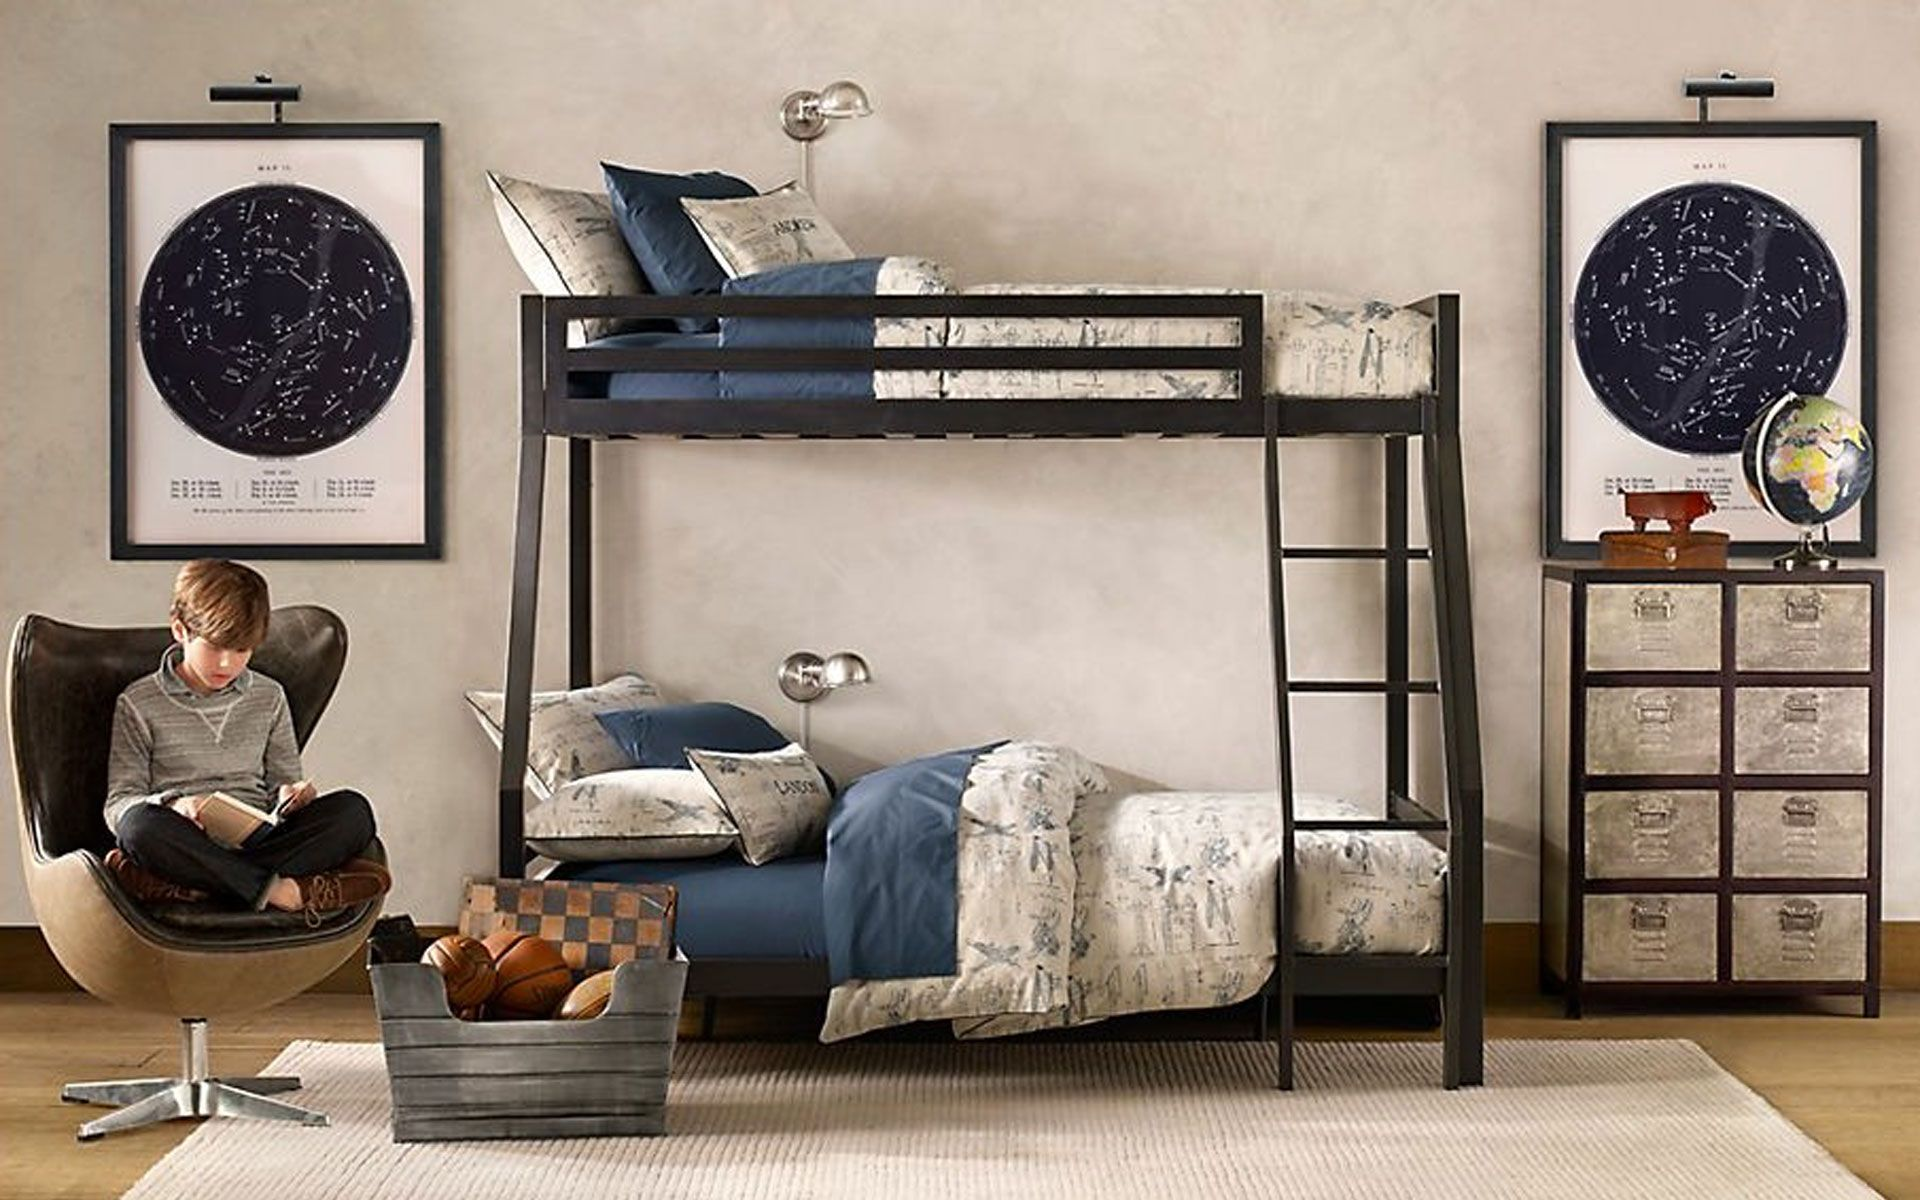 Cool Bedroom Designs For Guys galvanized metal furniture for a teen room | ideas inspiration